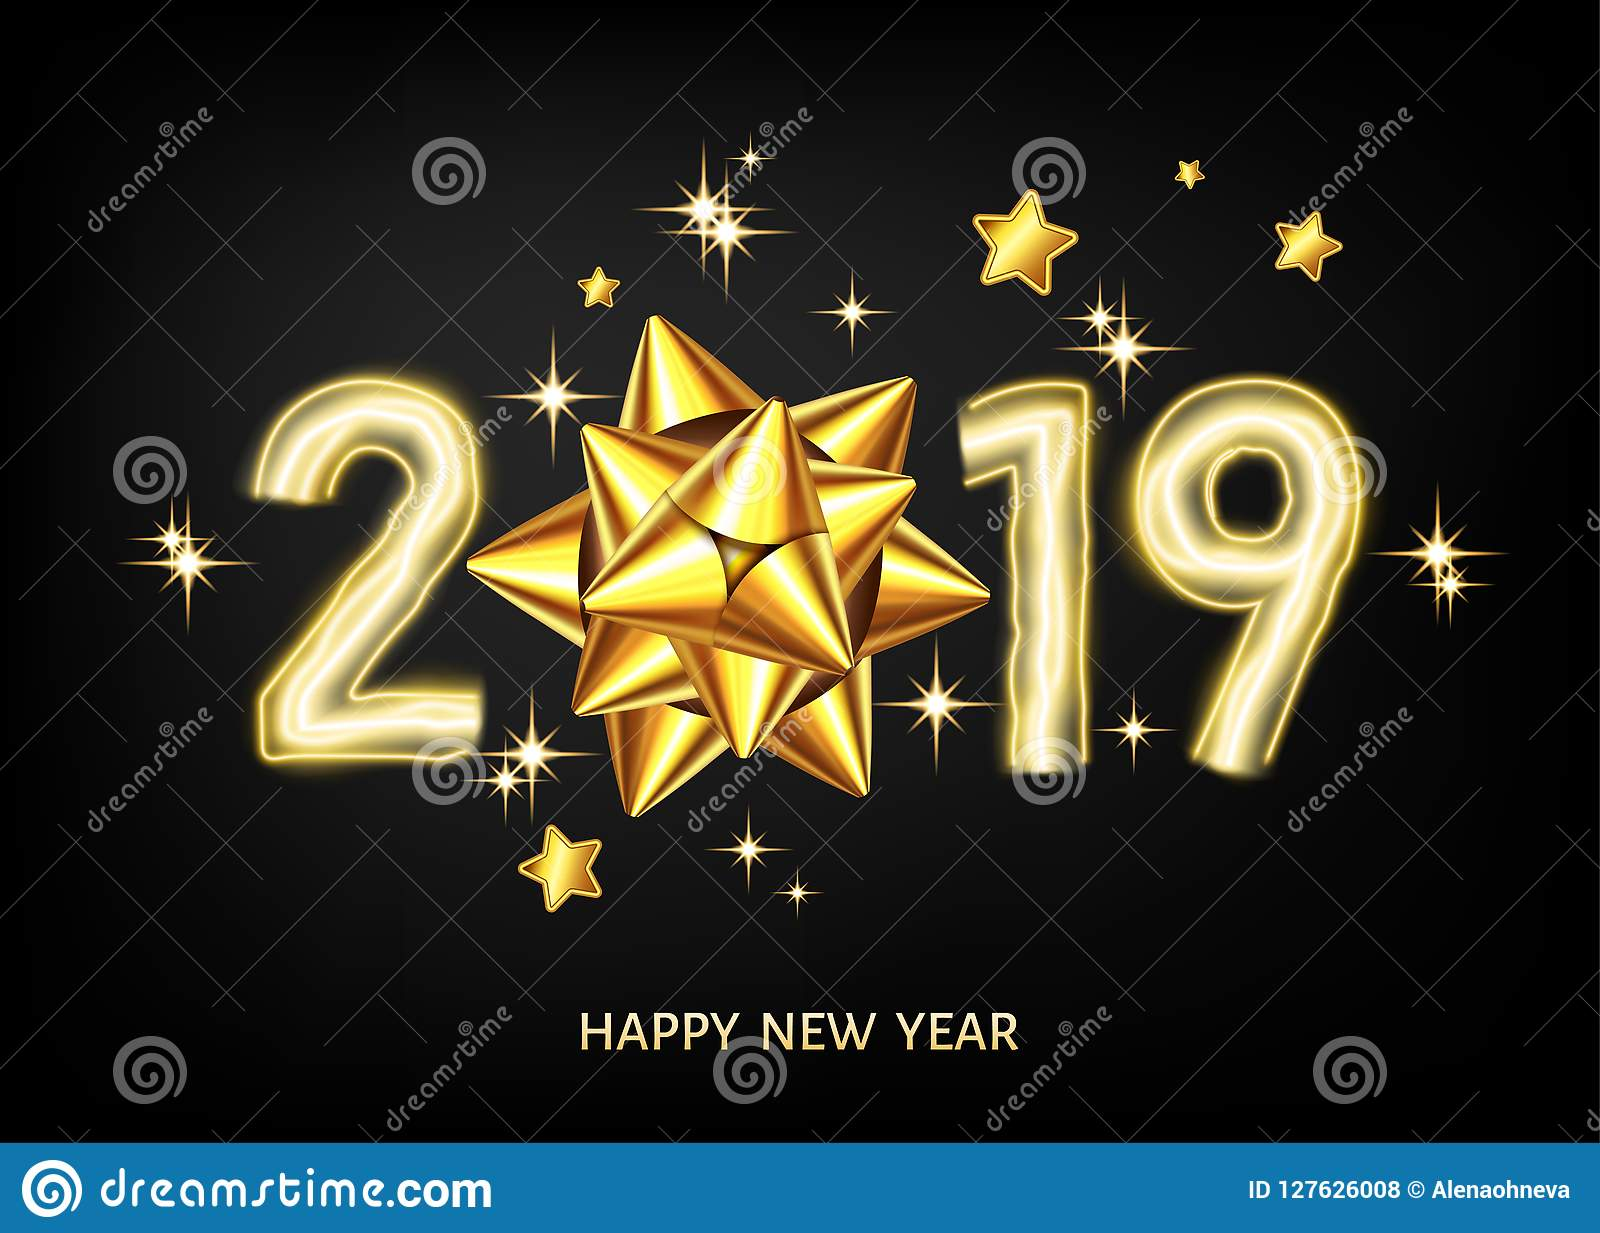 2019 happy new year black background with golden gift bow